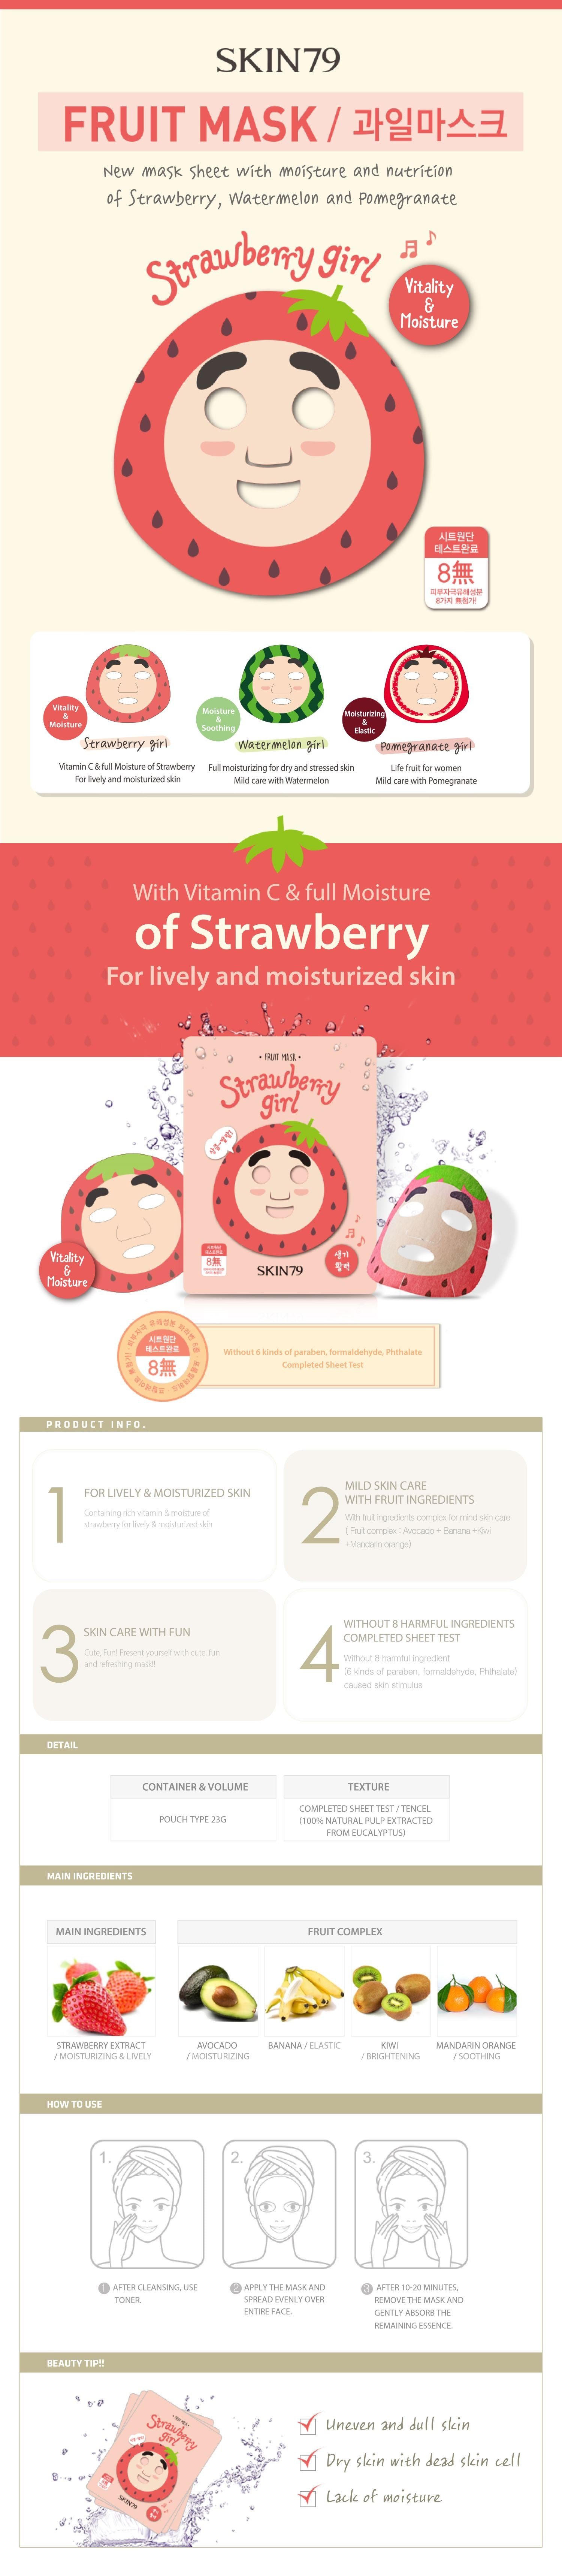 Skin79 Fruit Mask Strawberry Girl